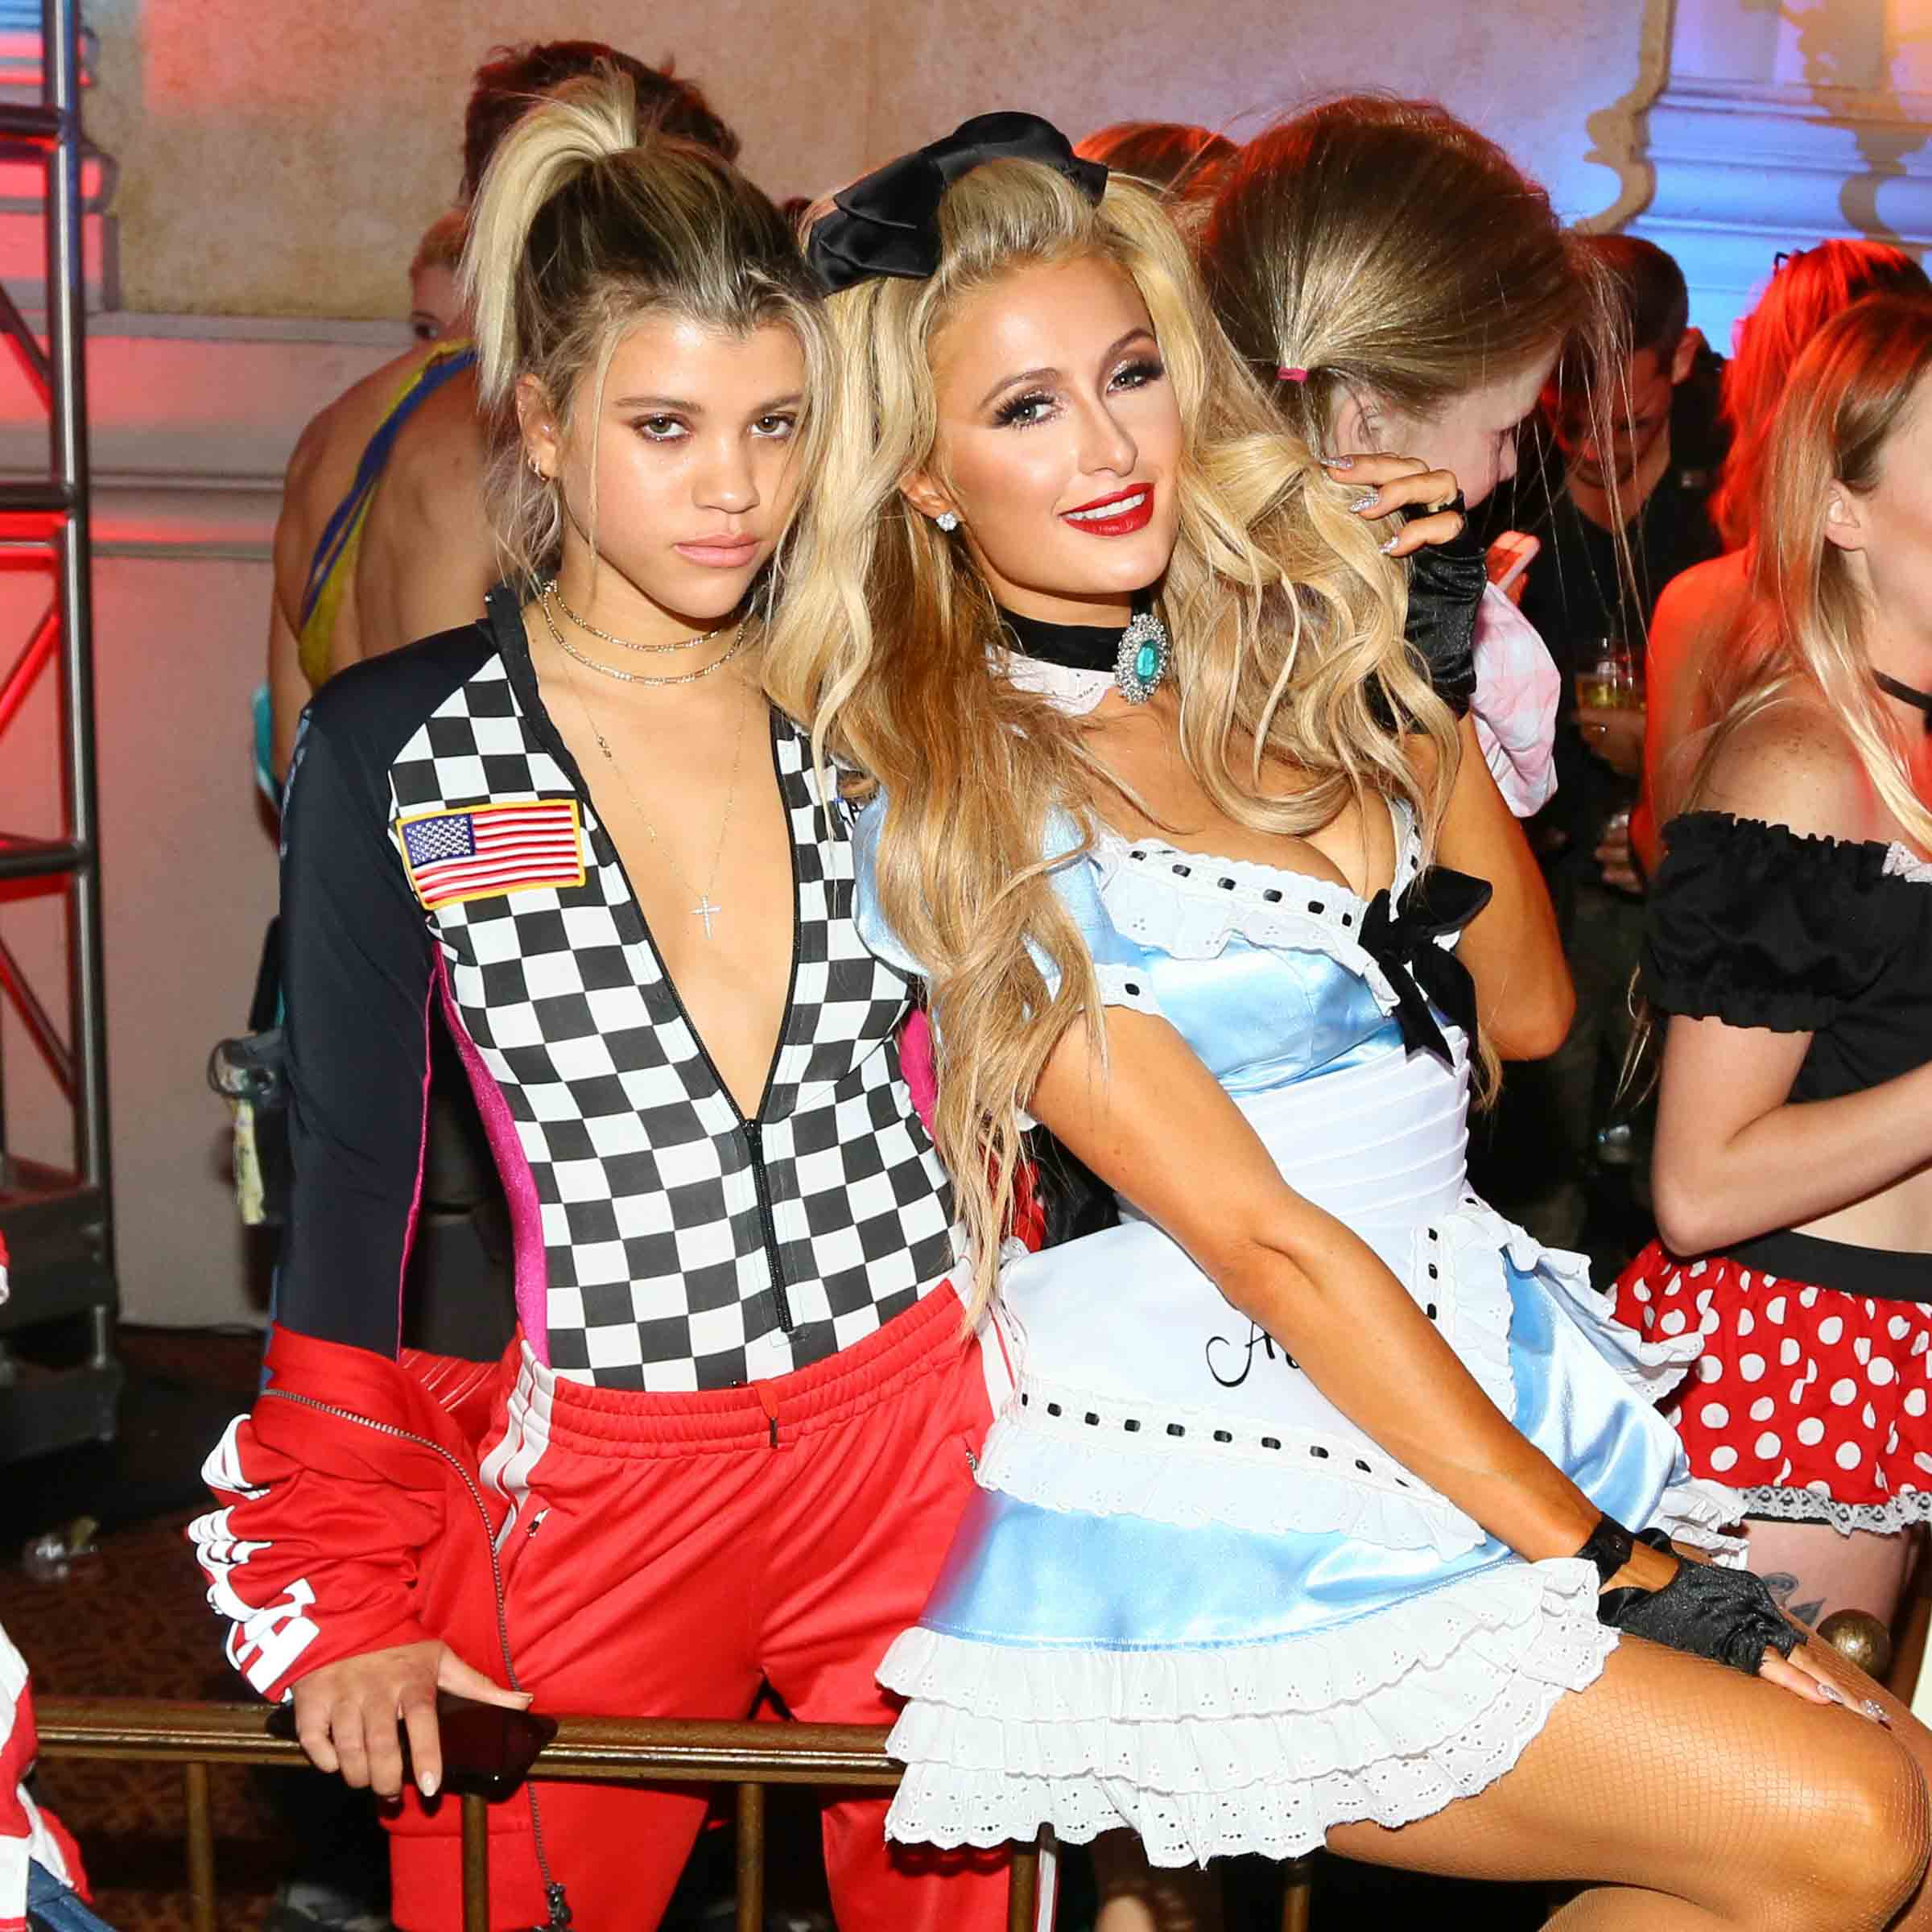 LOS ANGELES, CA - OCTOBER 29:  Paris Hilton (R) and Sofia Richie attend Trick or treats! - The 6th Annual treats! Magazine Halloween Party Sponsored by Absolut Elyx on October 29, 2016 in Los Angeles, California.  (Photo by Gabriel Olsen/WireImage)